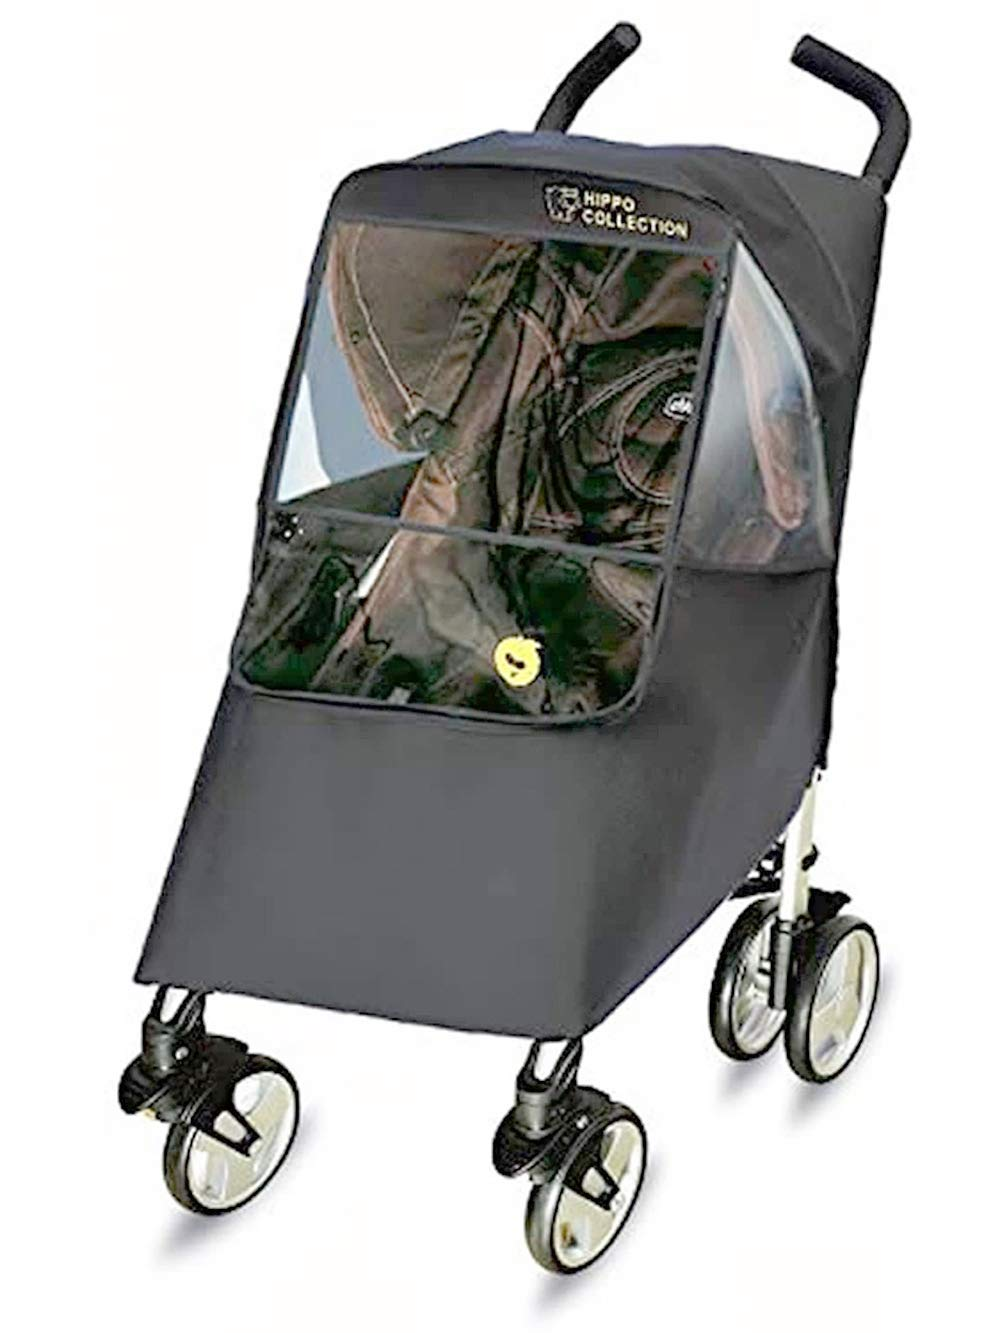 Hippo Collection Universal Stroller Weather Shield Max 47% OFF Price reduction - Gray one S